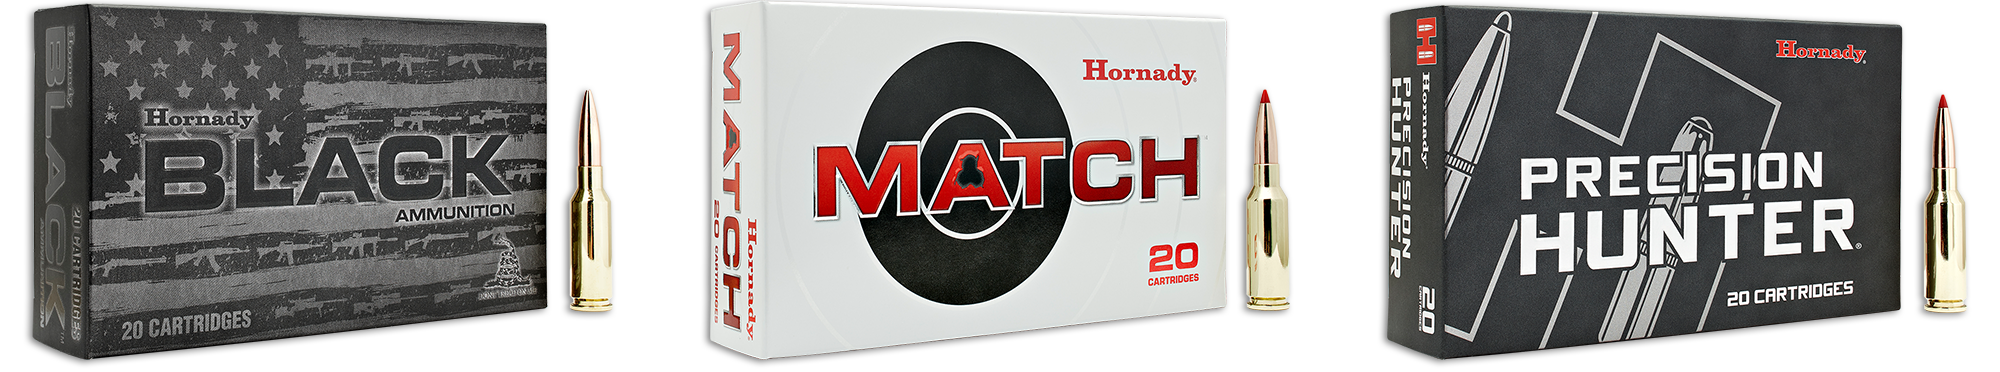 Hornady BLACK, Match, and Precision Hunter packaging